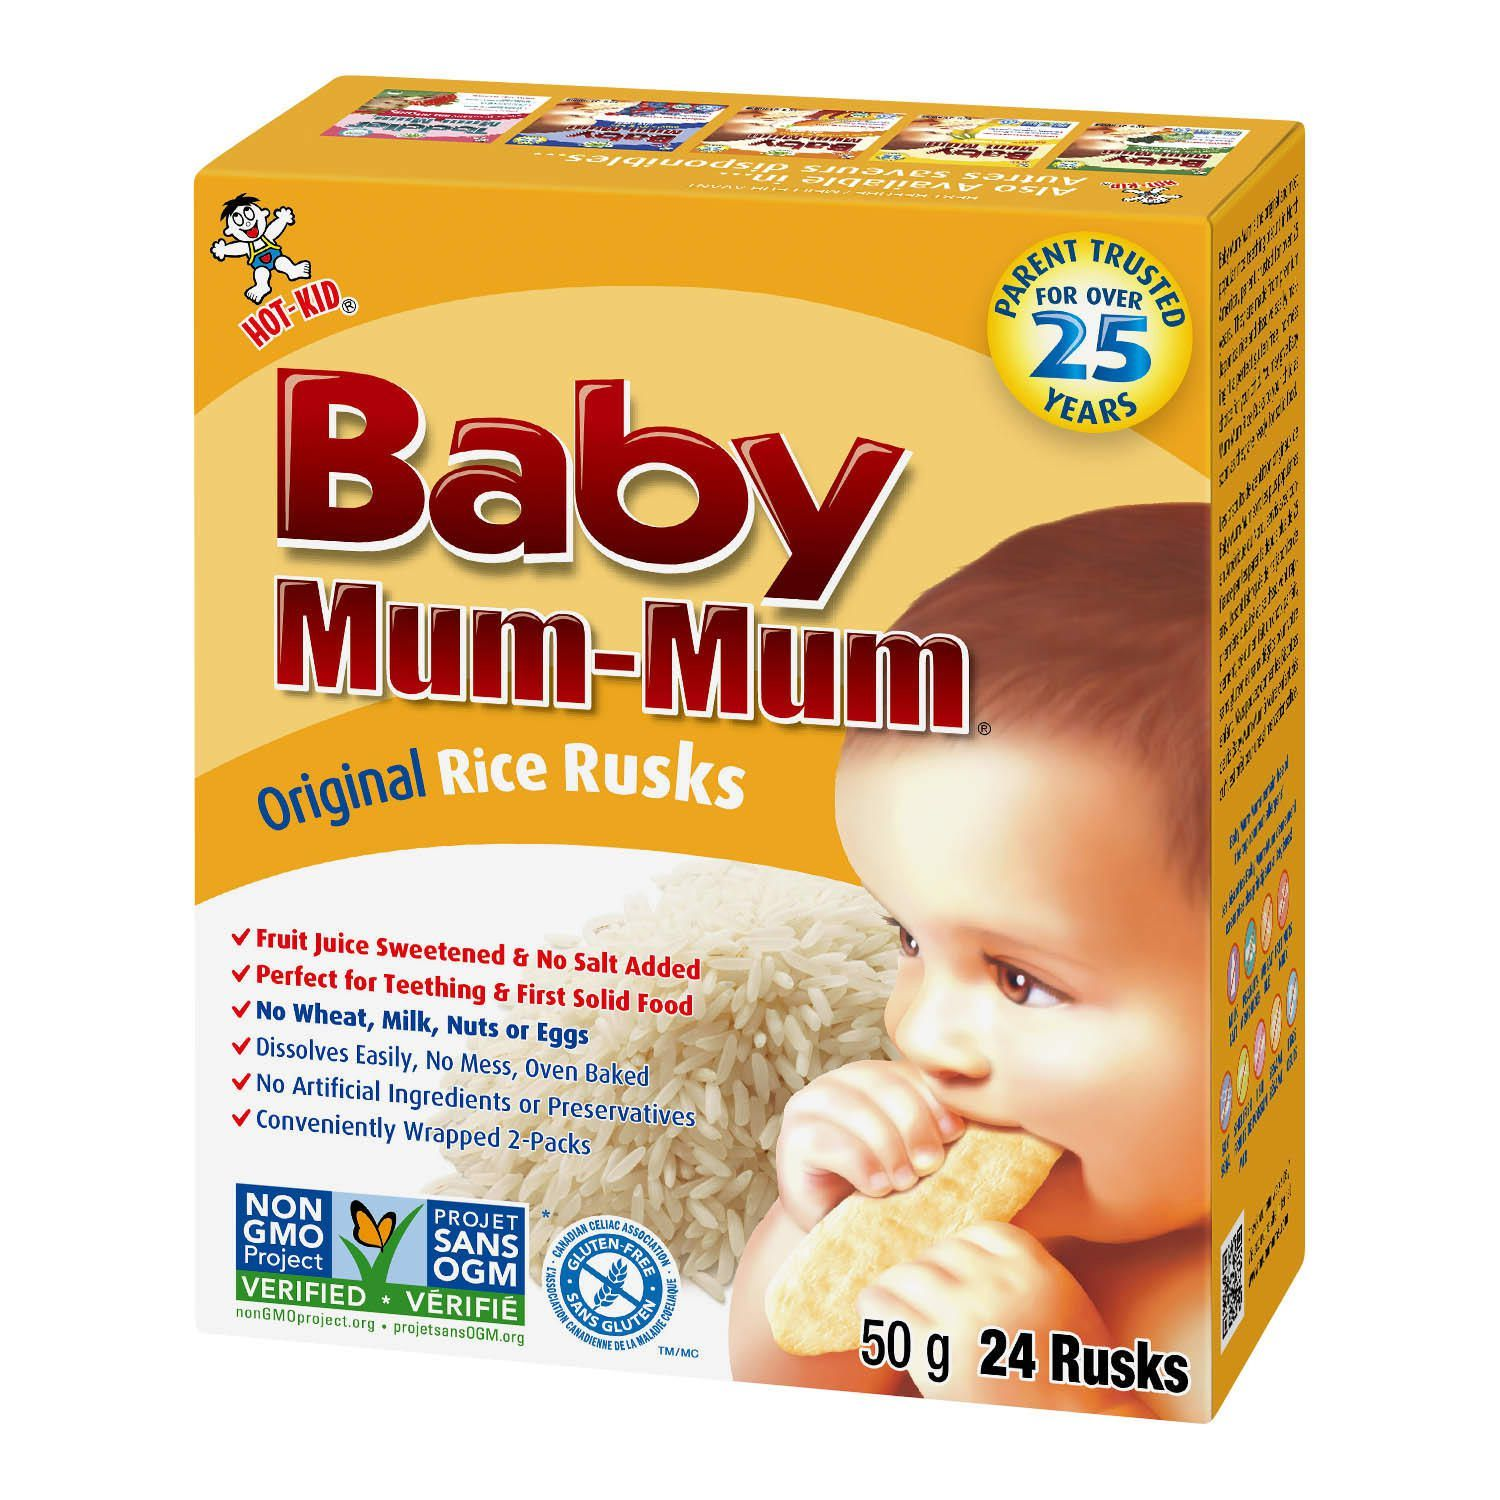 Baby Mum Mum: First Rice Rusk - Original (36g) image